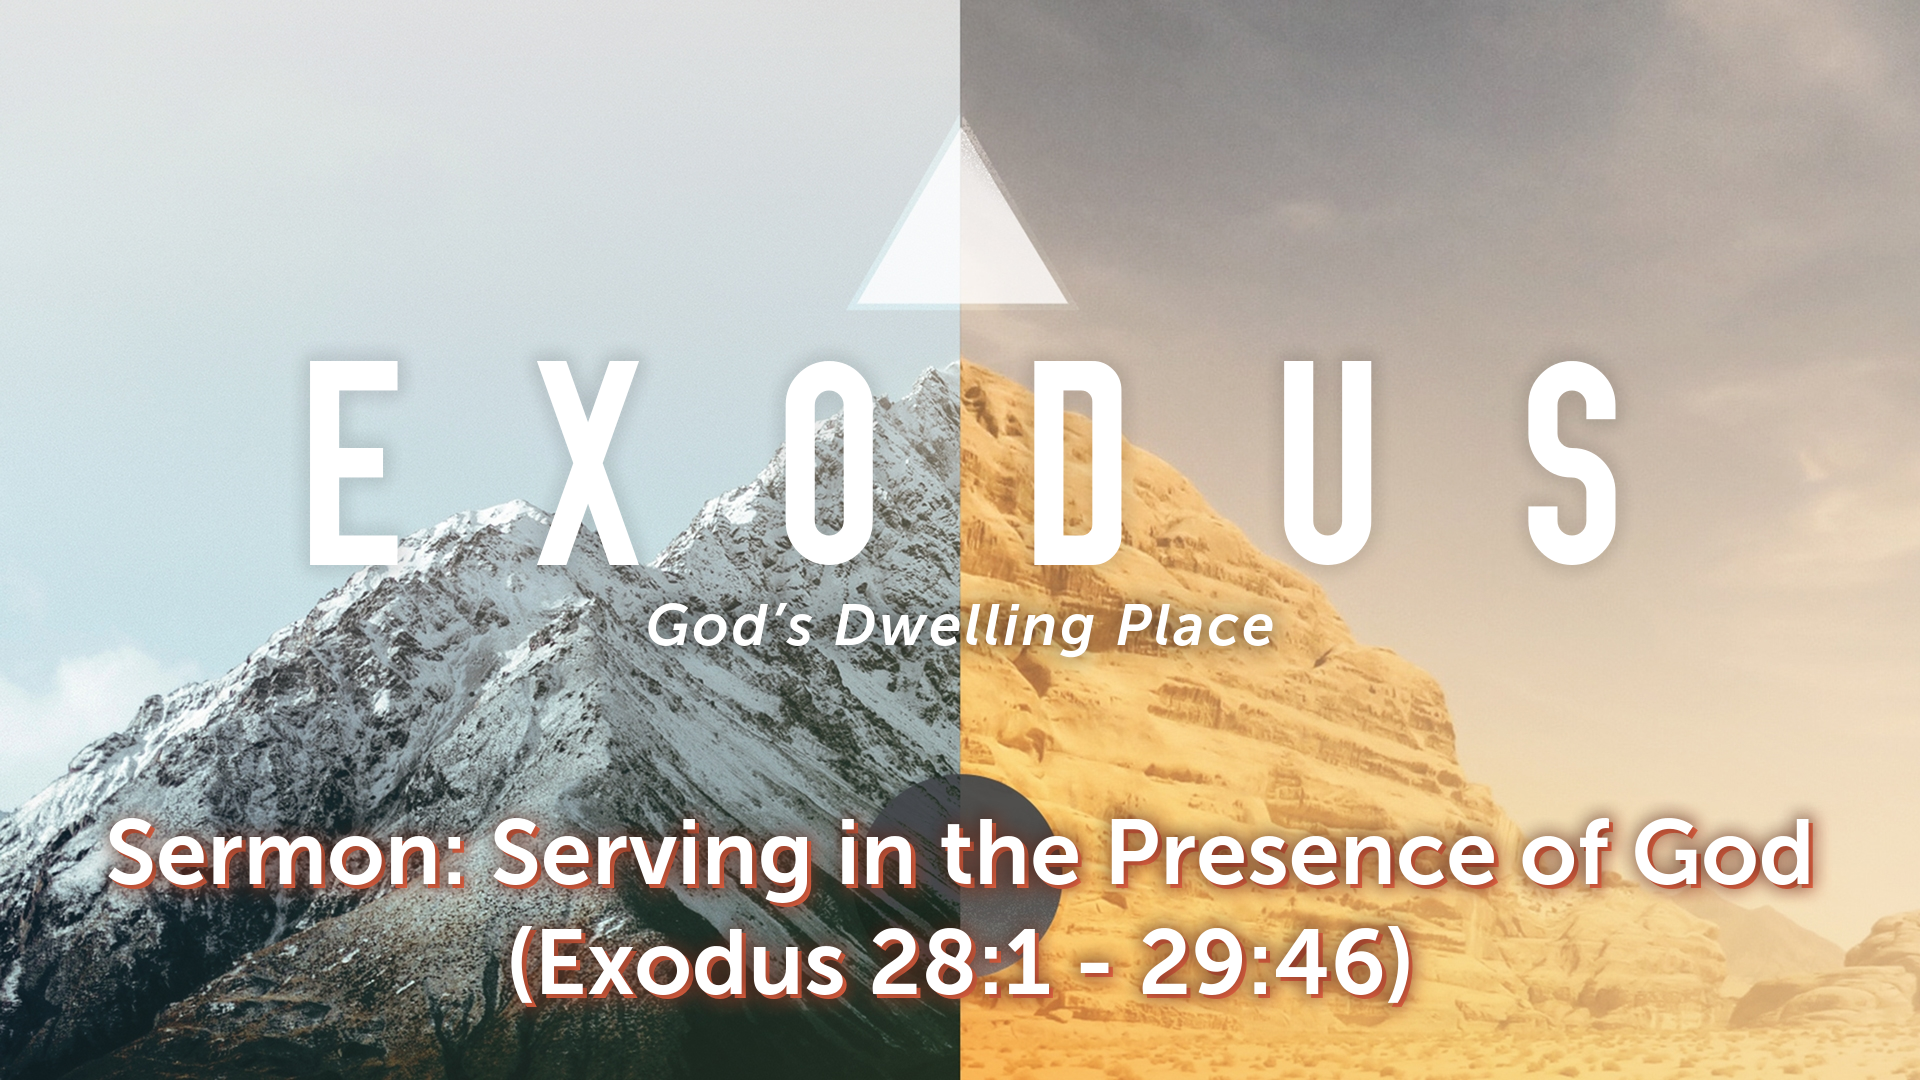 Image for the sermon Serving in the Presence of God